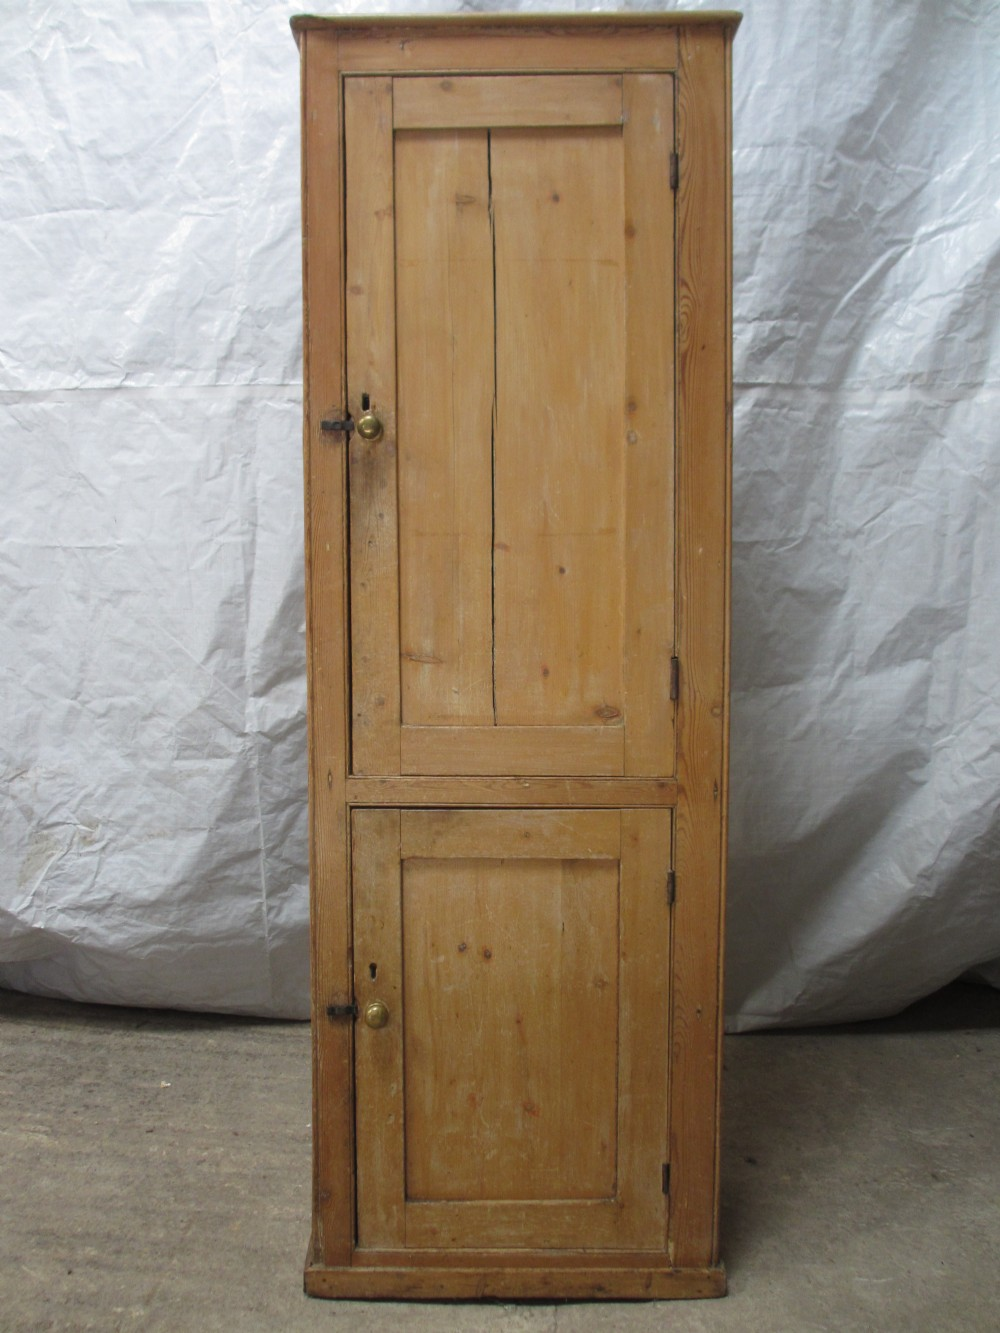 19th century tall 2 door pine cupboard cabinet - 19th Century Tall 2 Door Pine Cupboard / Cabinet 261938